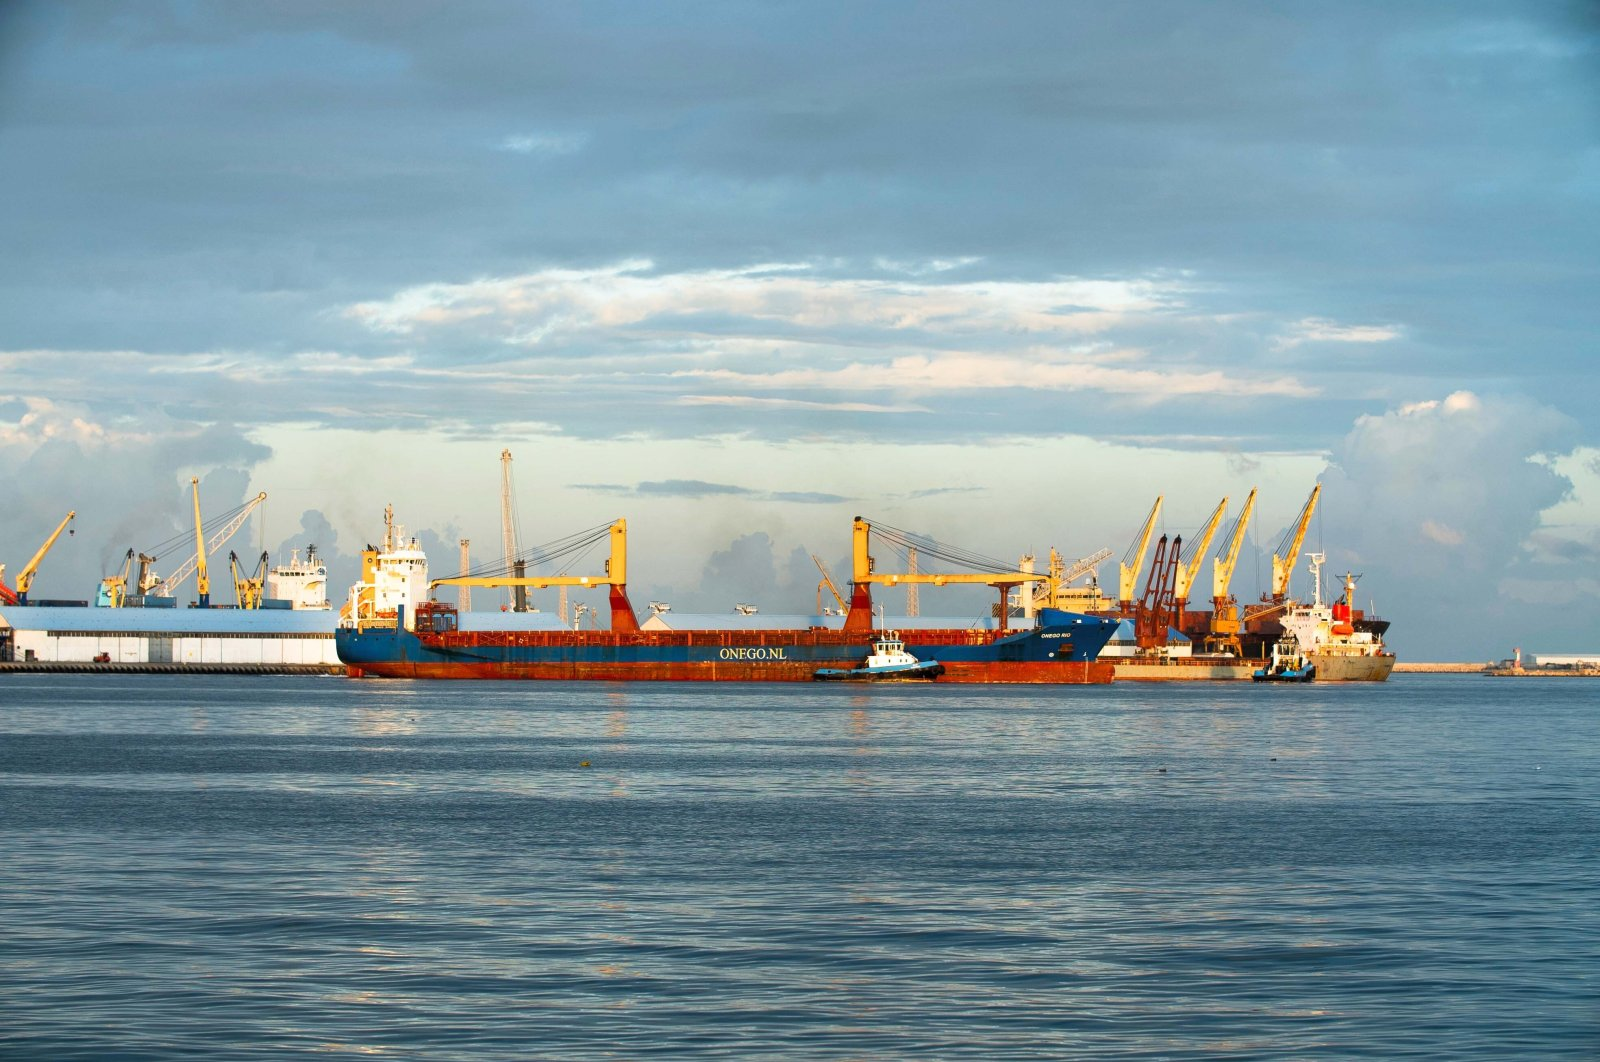 Container ships with loading cranes at the Port of Tripoli, Tripoli, Libya, Nov. 25, 2020. (Shutterstock Photo)